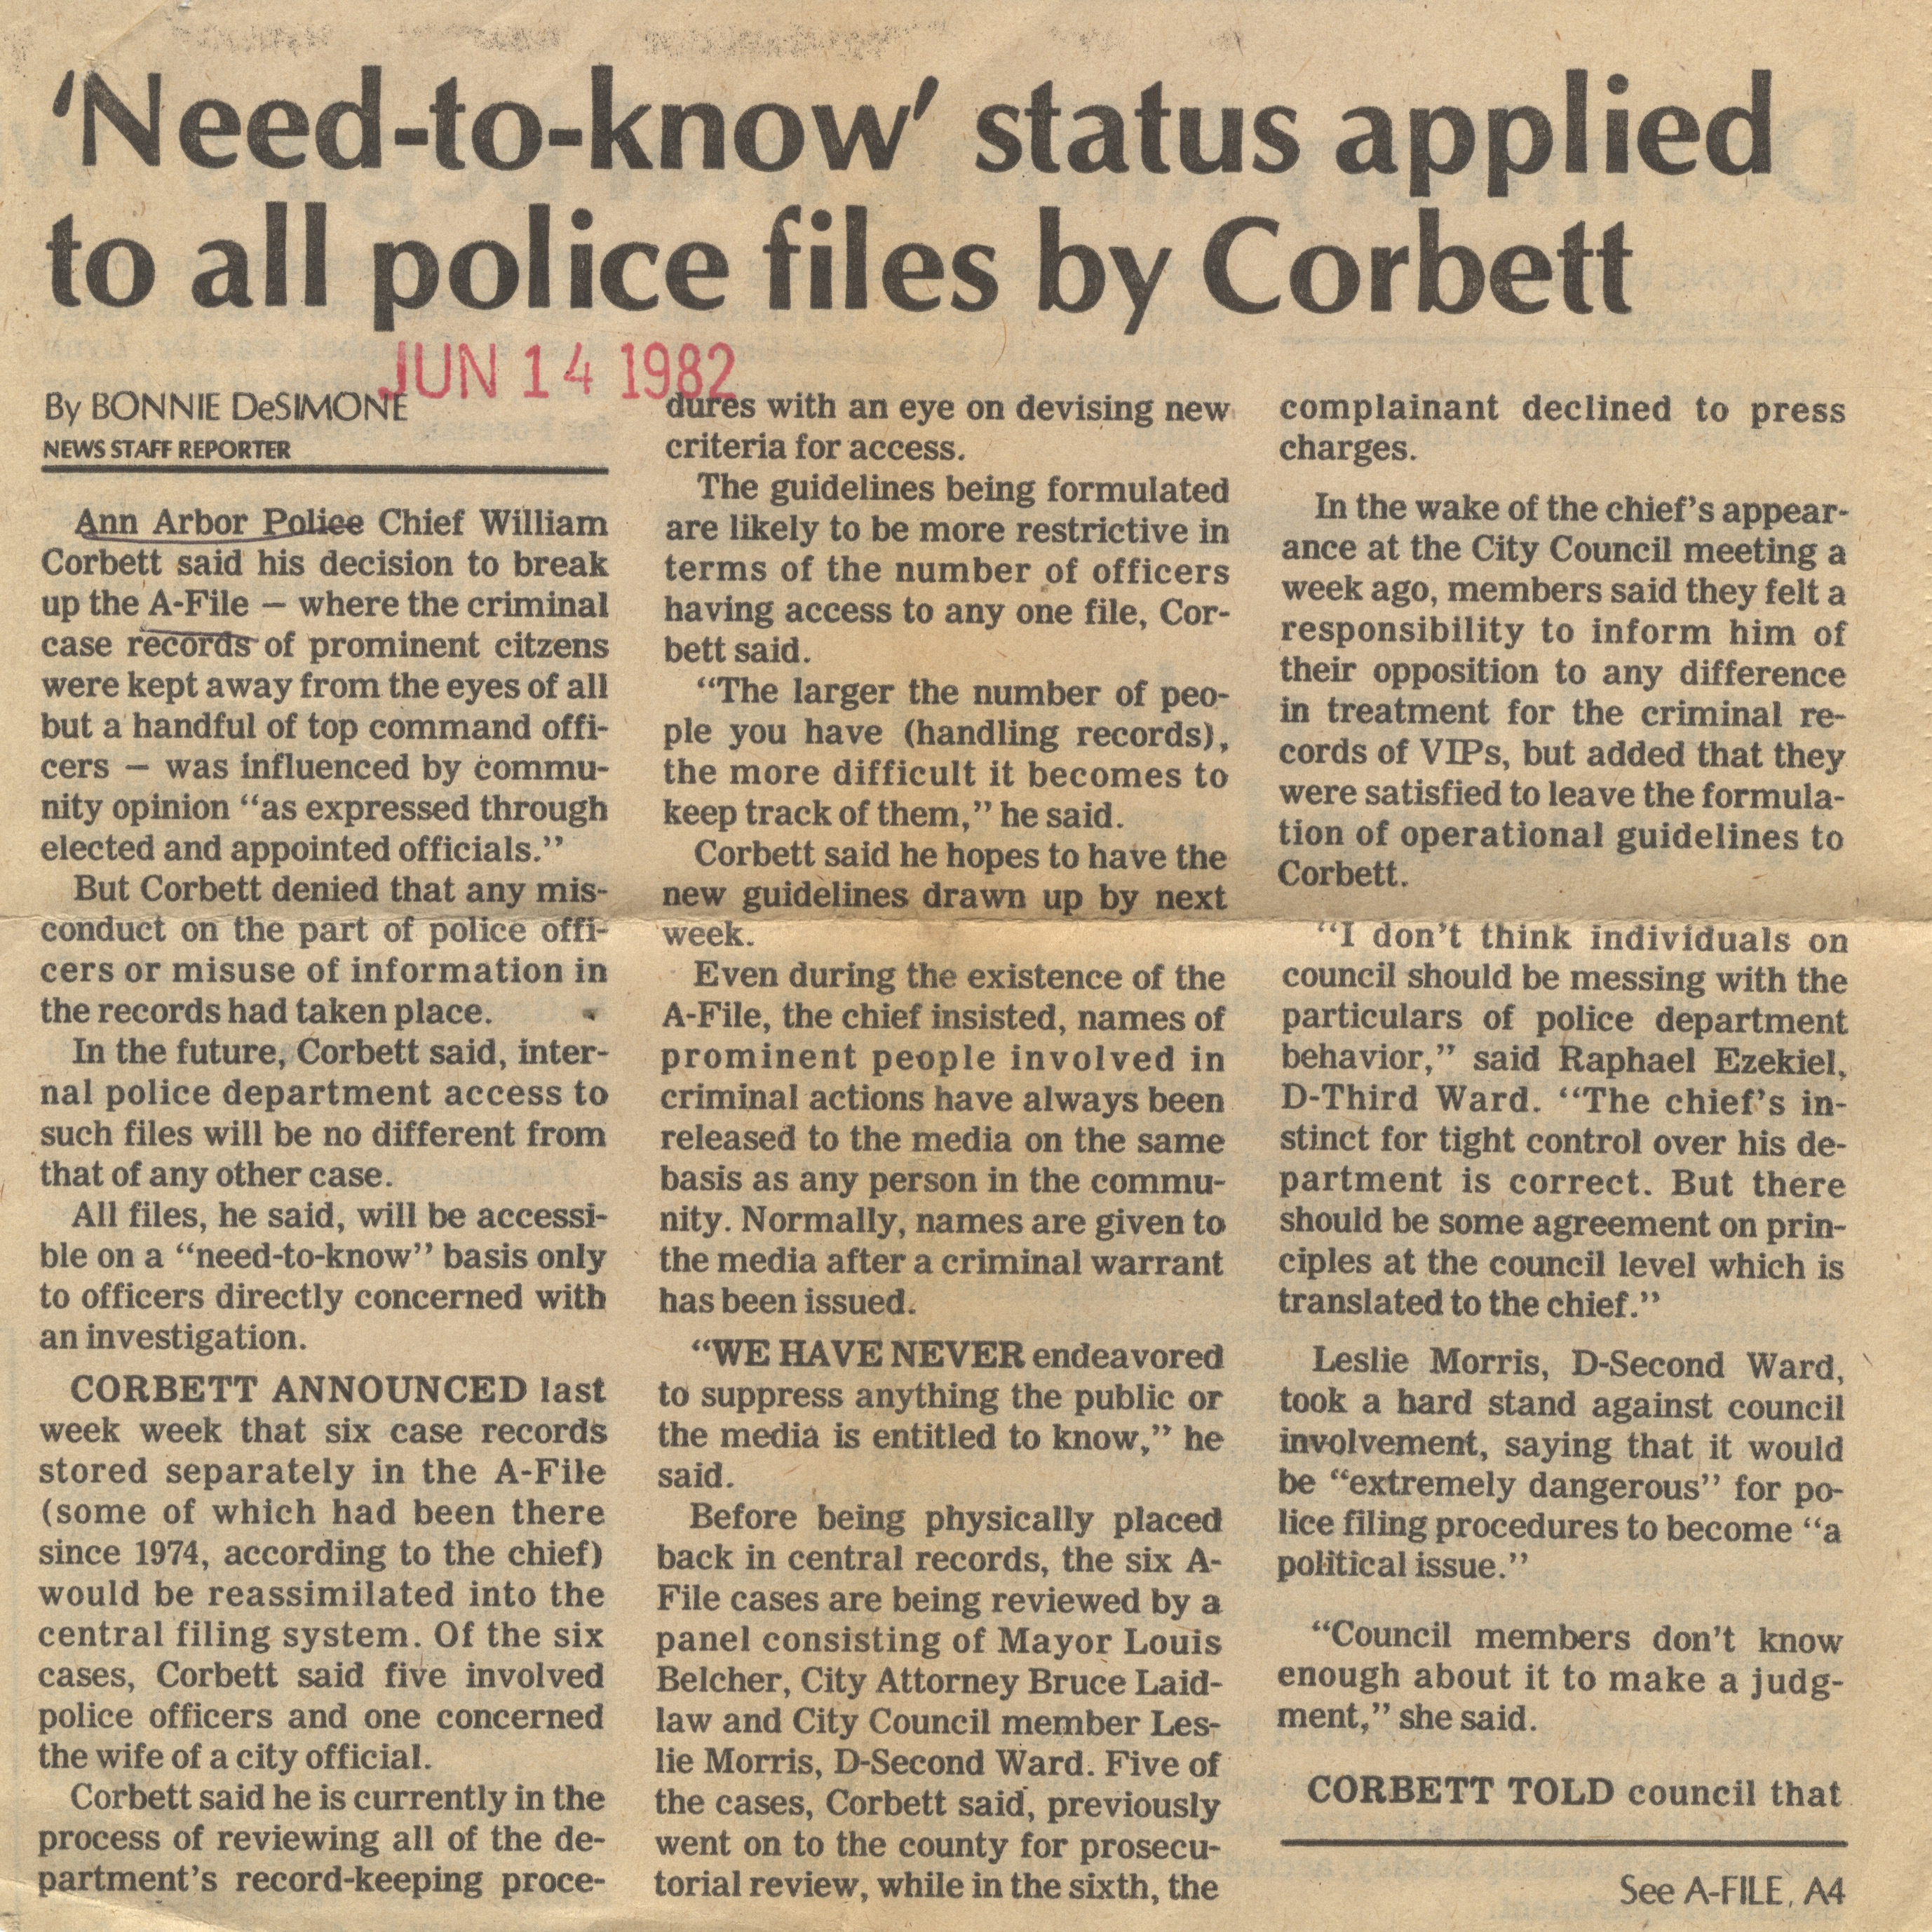 'Need-To-Know' Status Applied To All Police Files By Corbett image